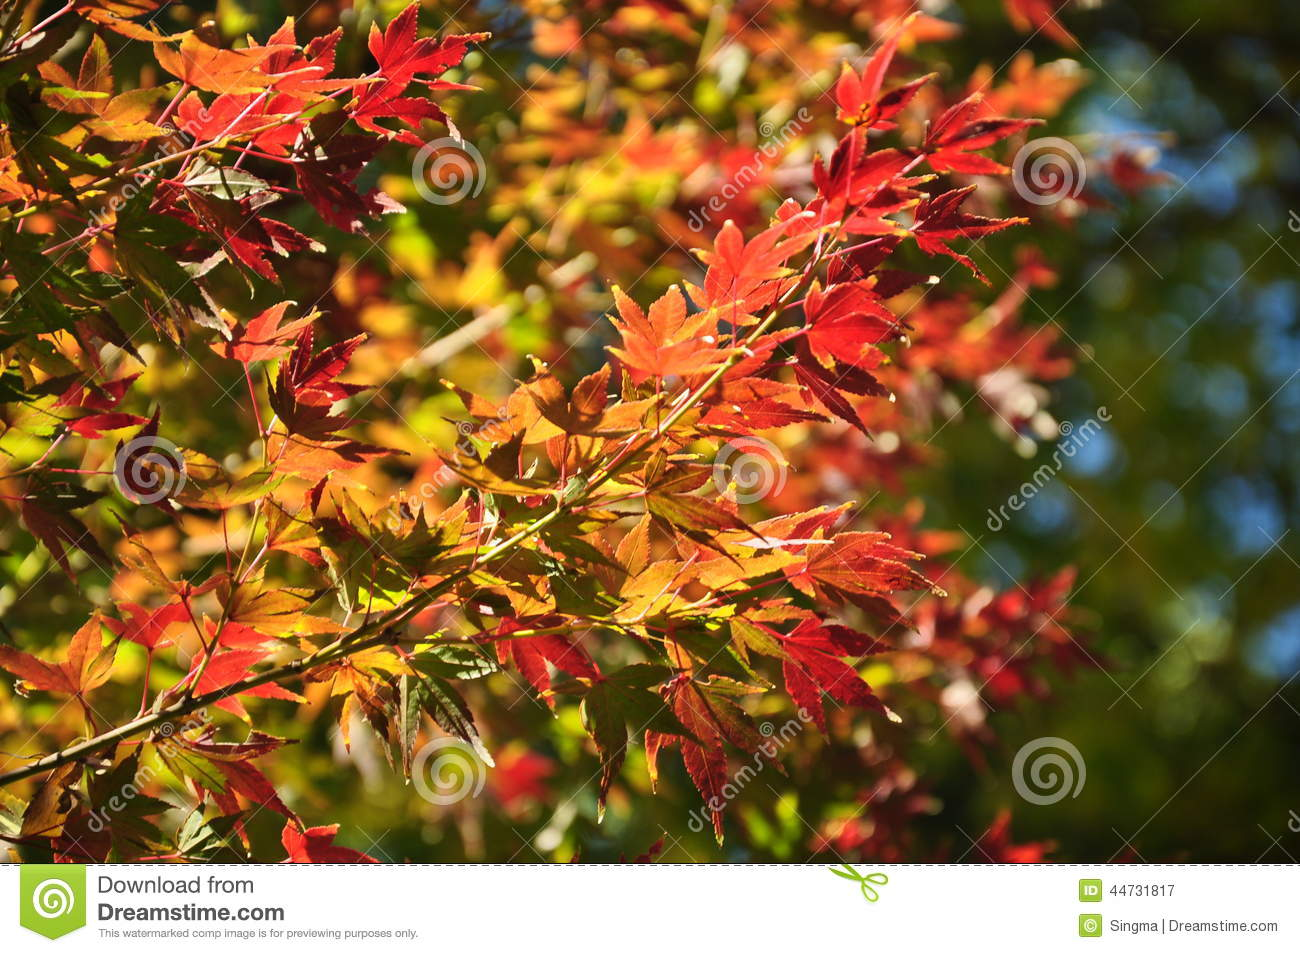 Furniture Warehouse Kitchener Maple Leaves Mixed Fall Colors 28 Images Maple Leaves